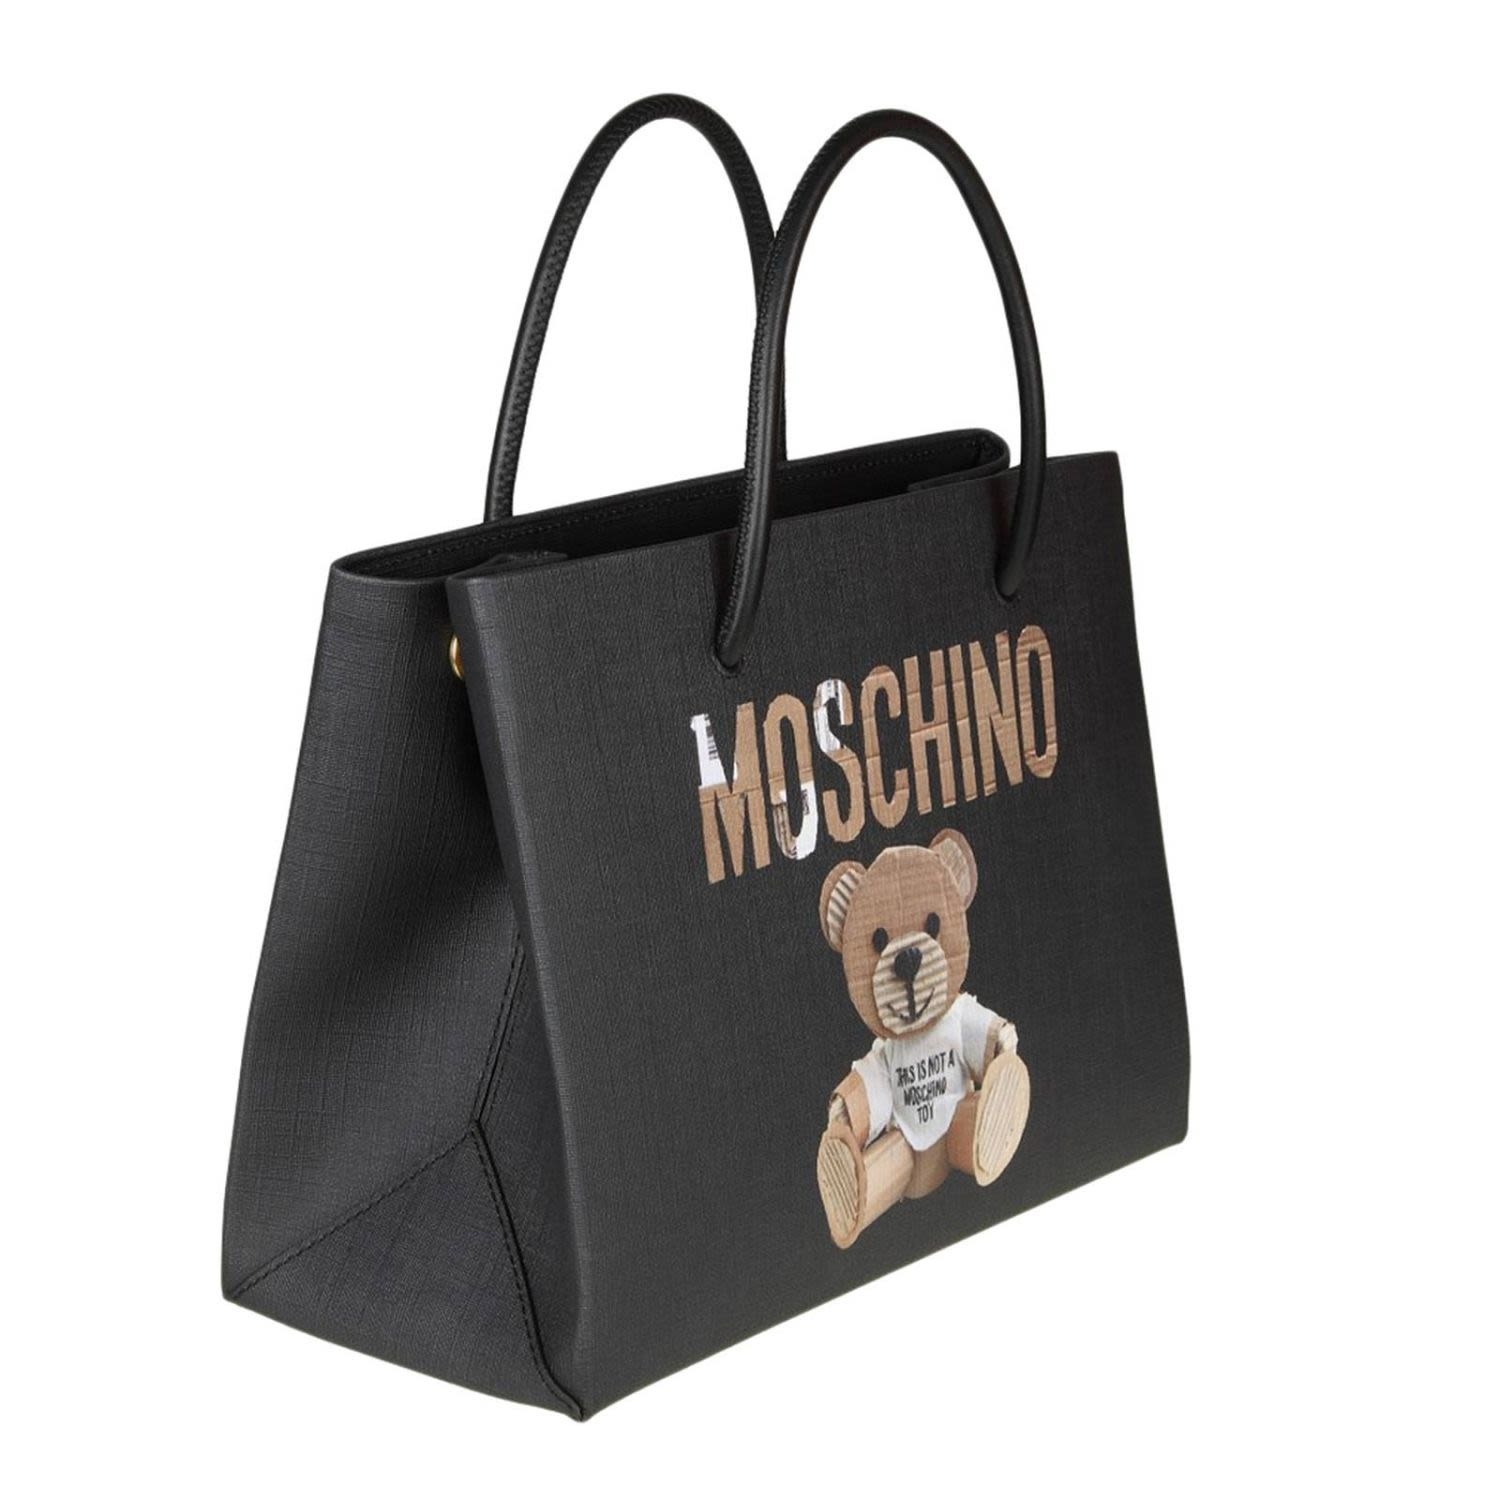 Handbag Shoulder Bag Women Moschino